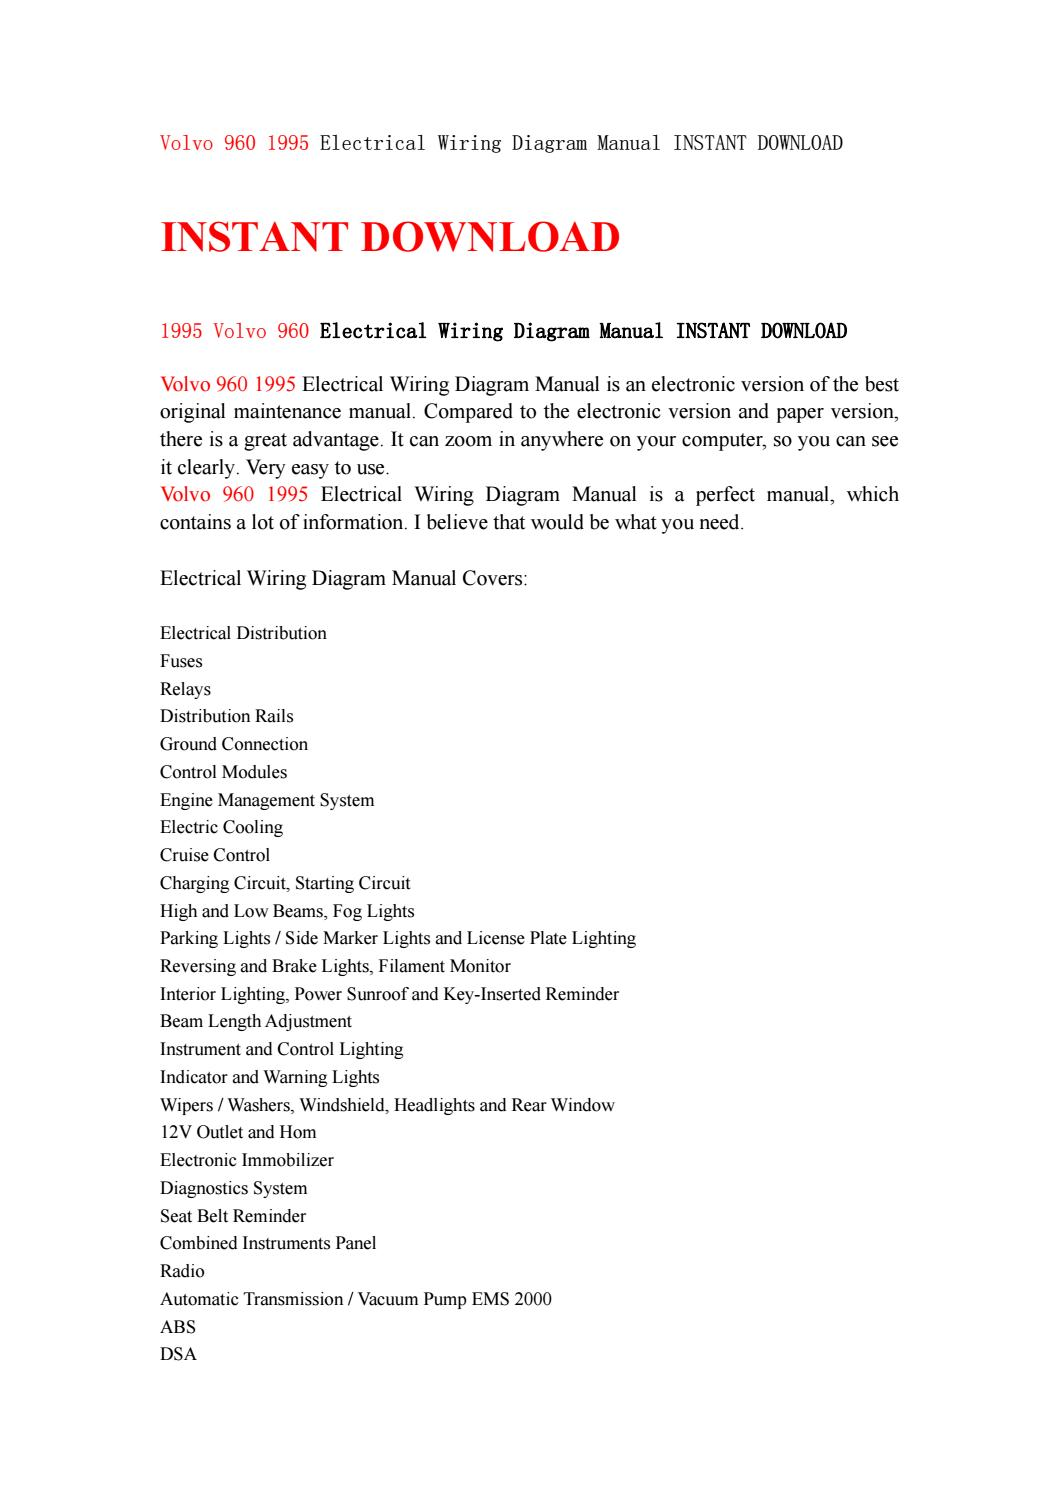 Volvo 960 1995 Electrical Wiring Diagram Manual Instant Download By Monitor Power Control Ksjefnsenfn Issuu